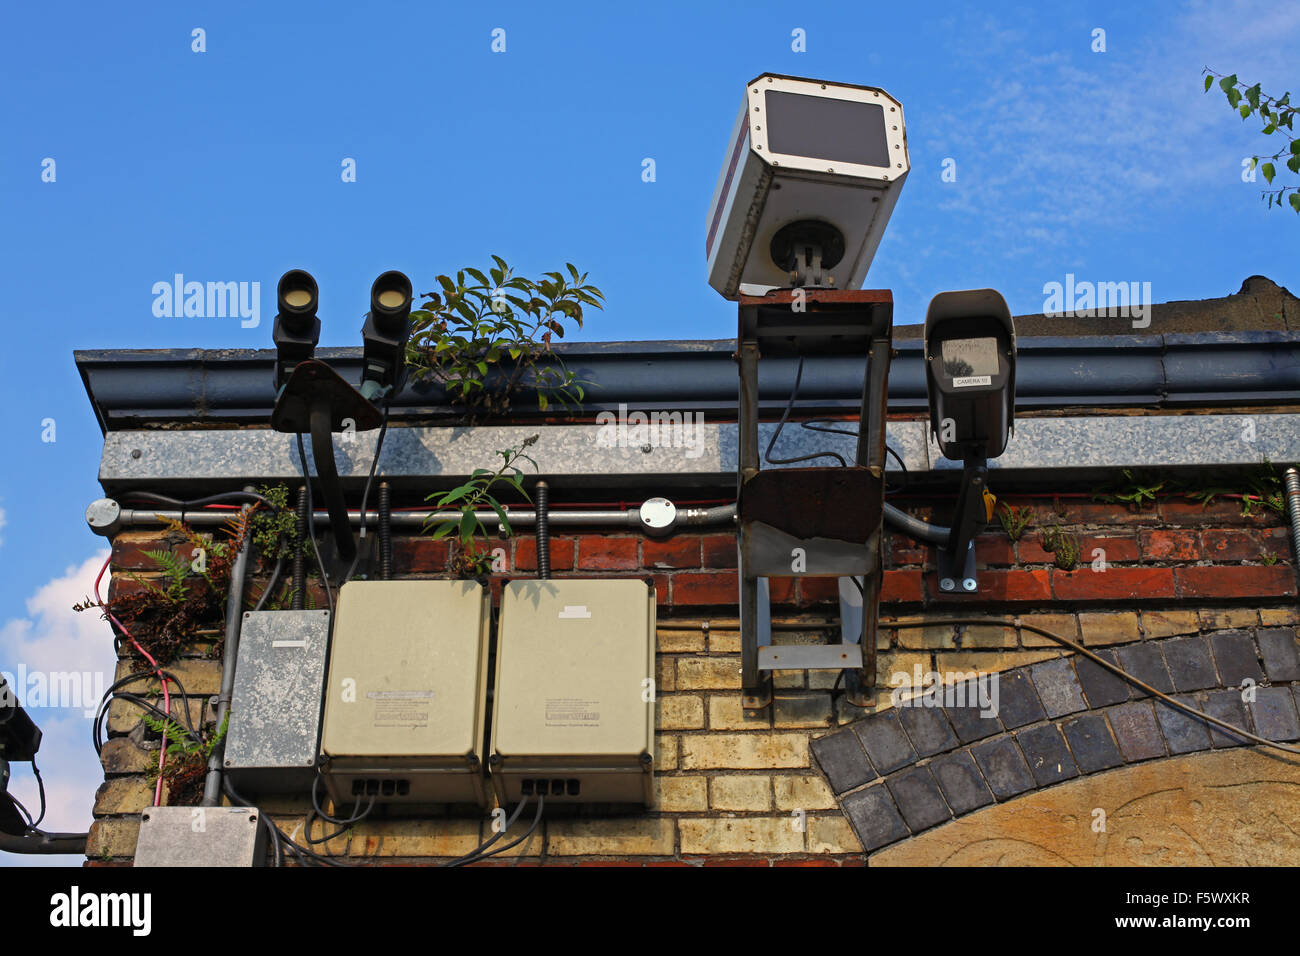 laser  microwave  camera CCTV receivers transmitters all mounted on the side of a building looking over us all - Stock Image